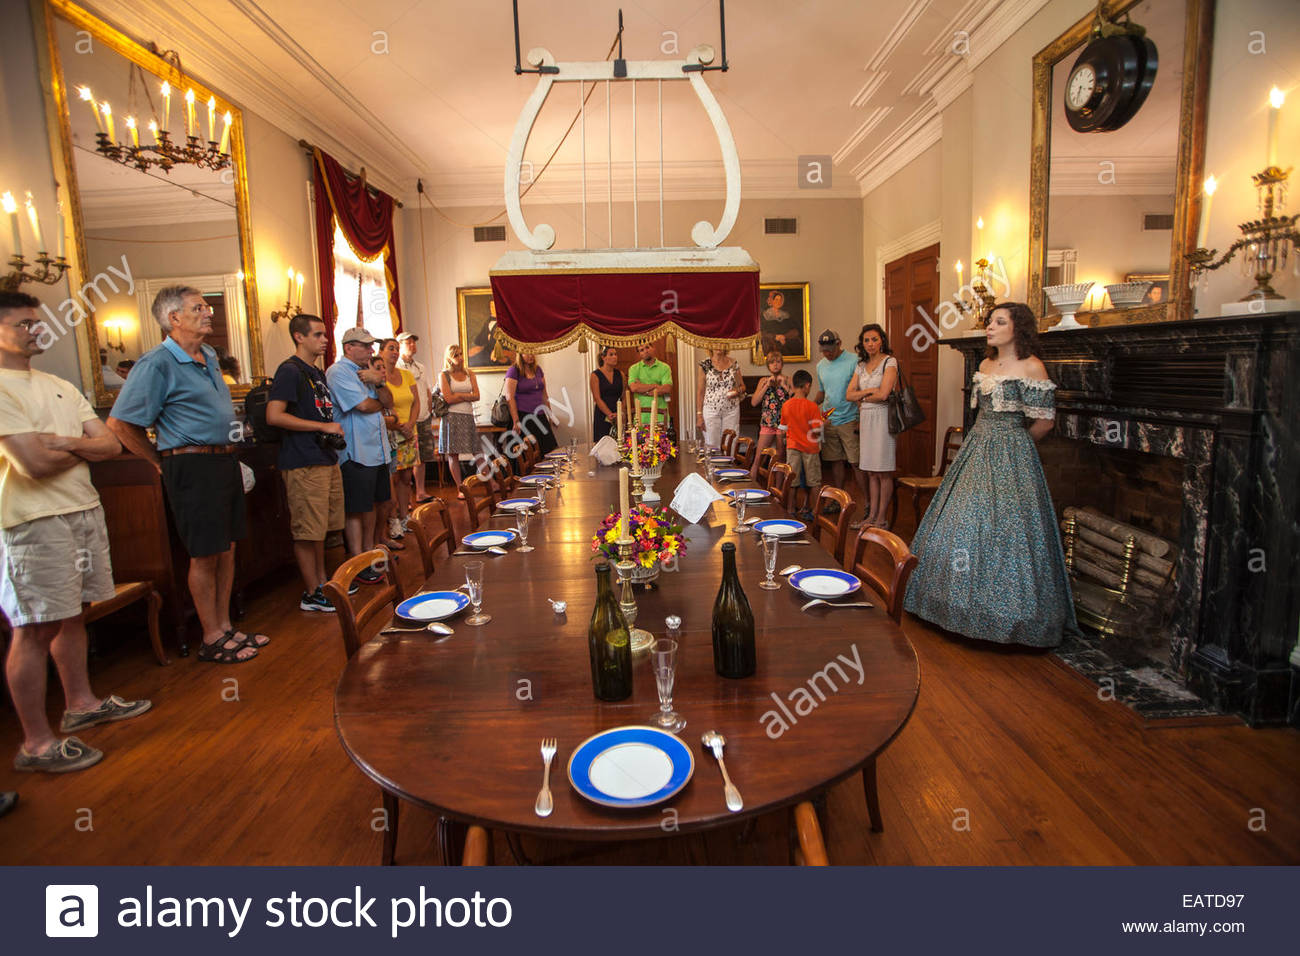 A docent talks to tourists in the dining room of the 19th century Oak Alley Plantation. - Stock Image